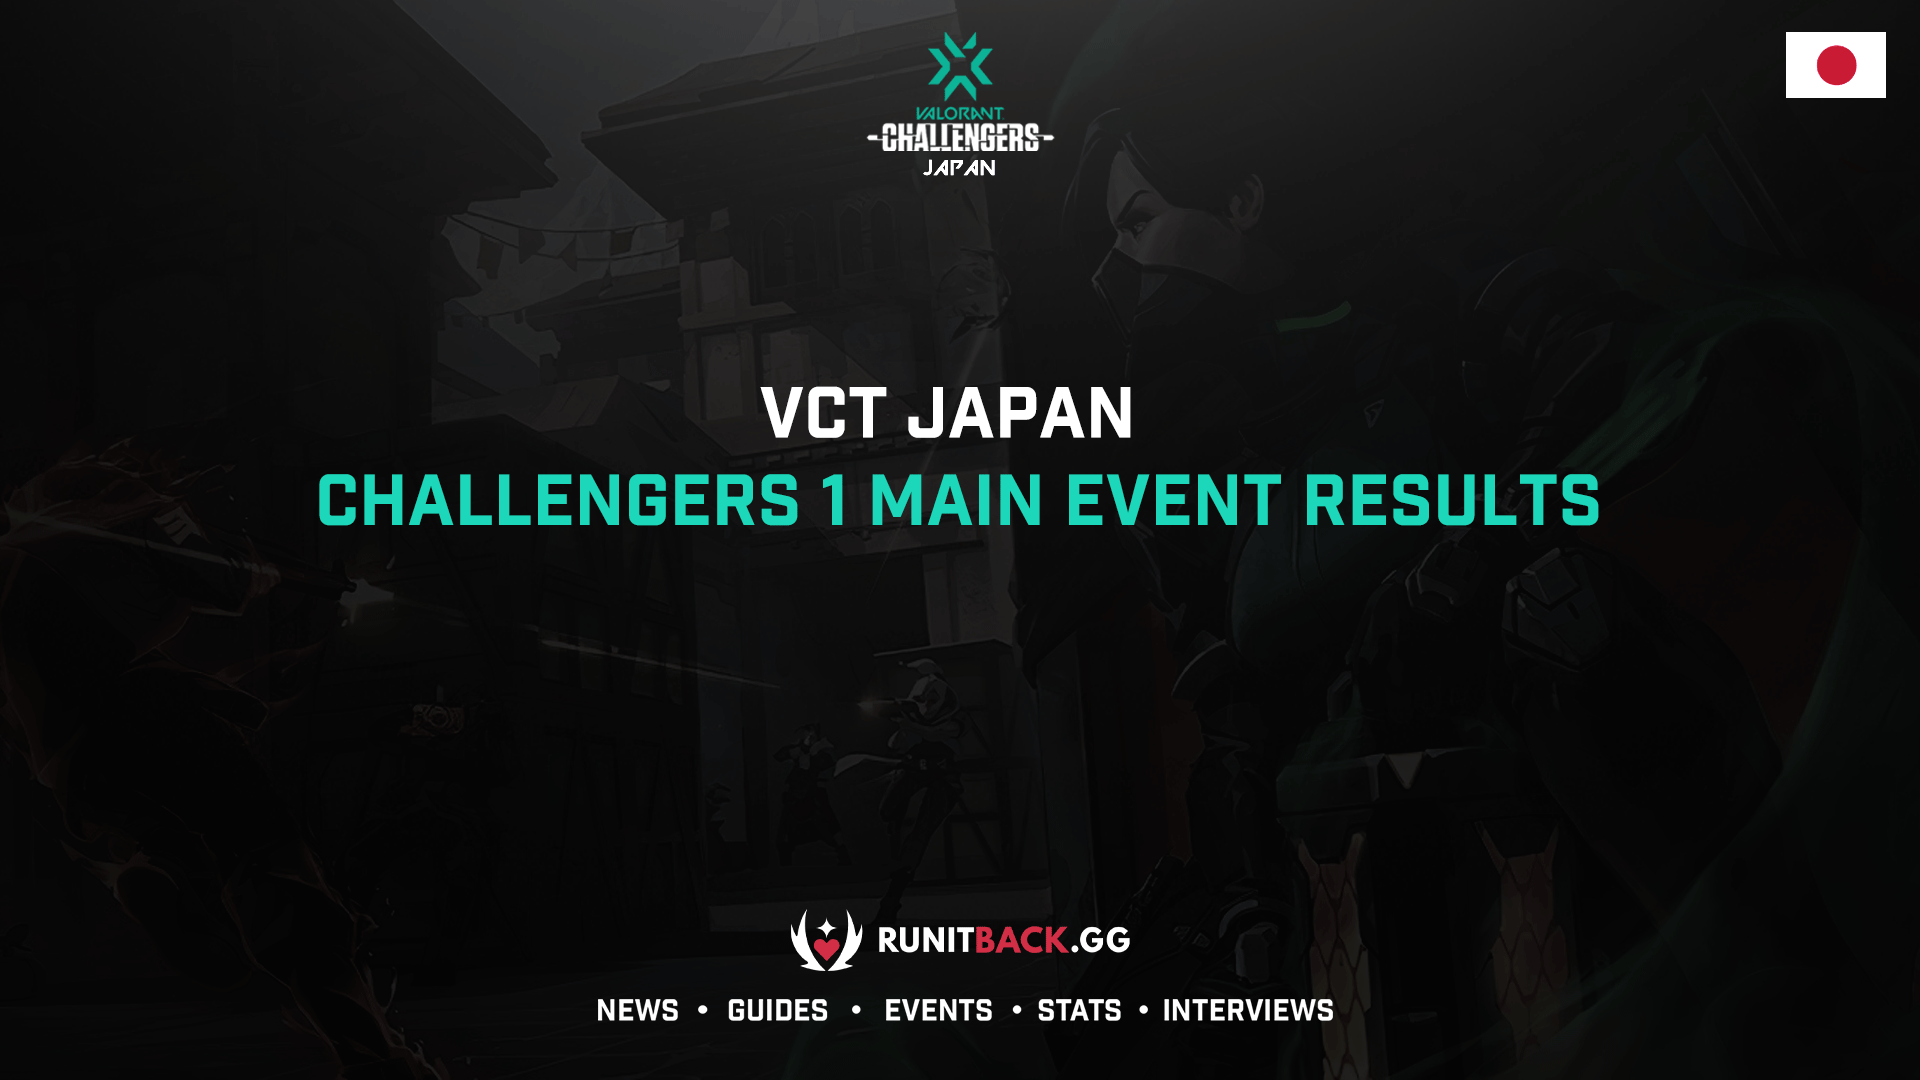 VCT Japan: Challengers 1 Main Event Results